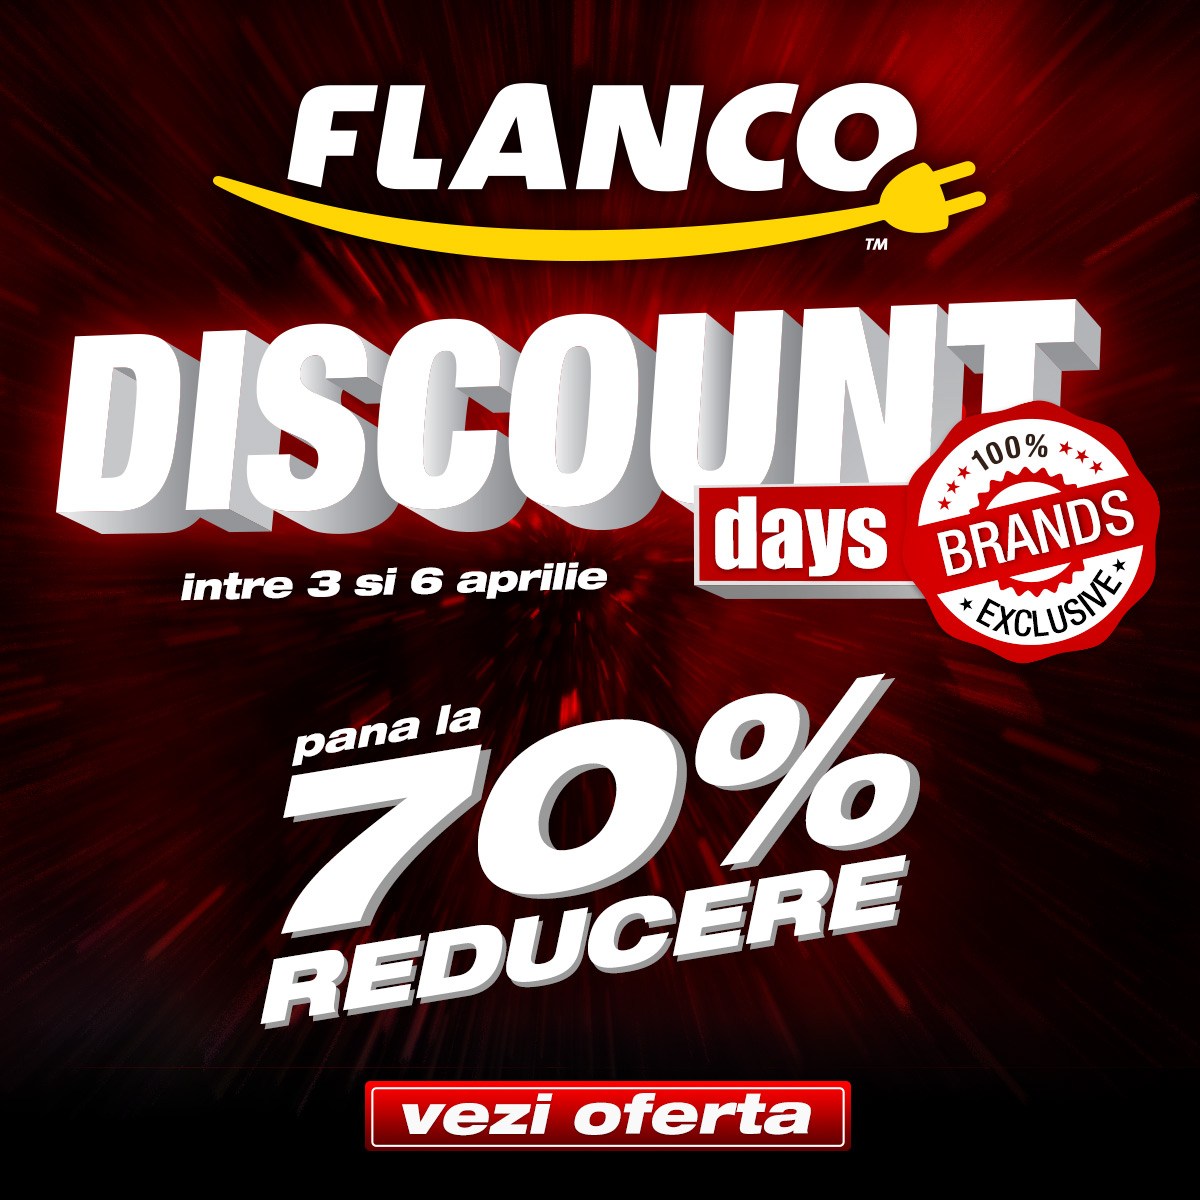 flanco discount days (2)